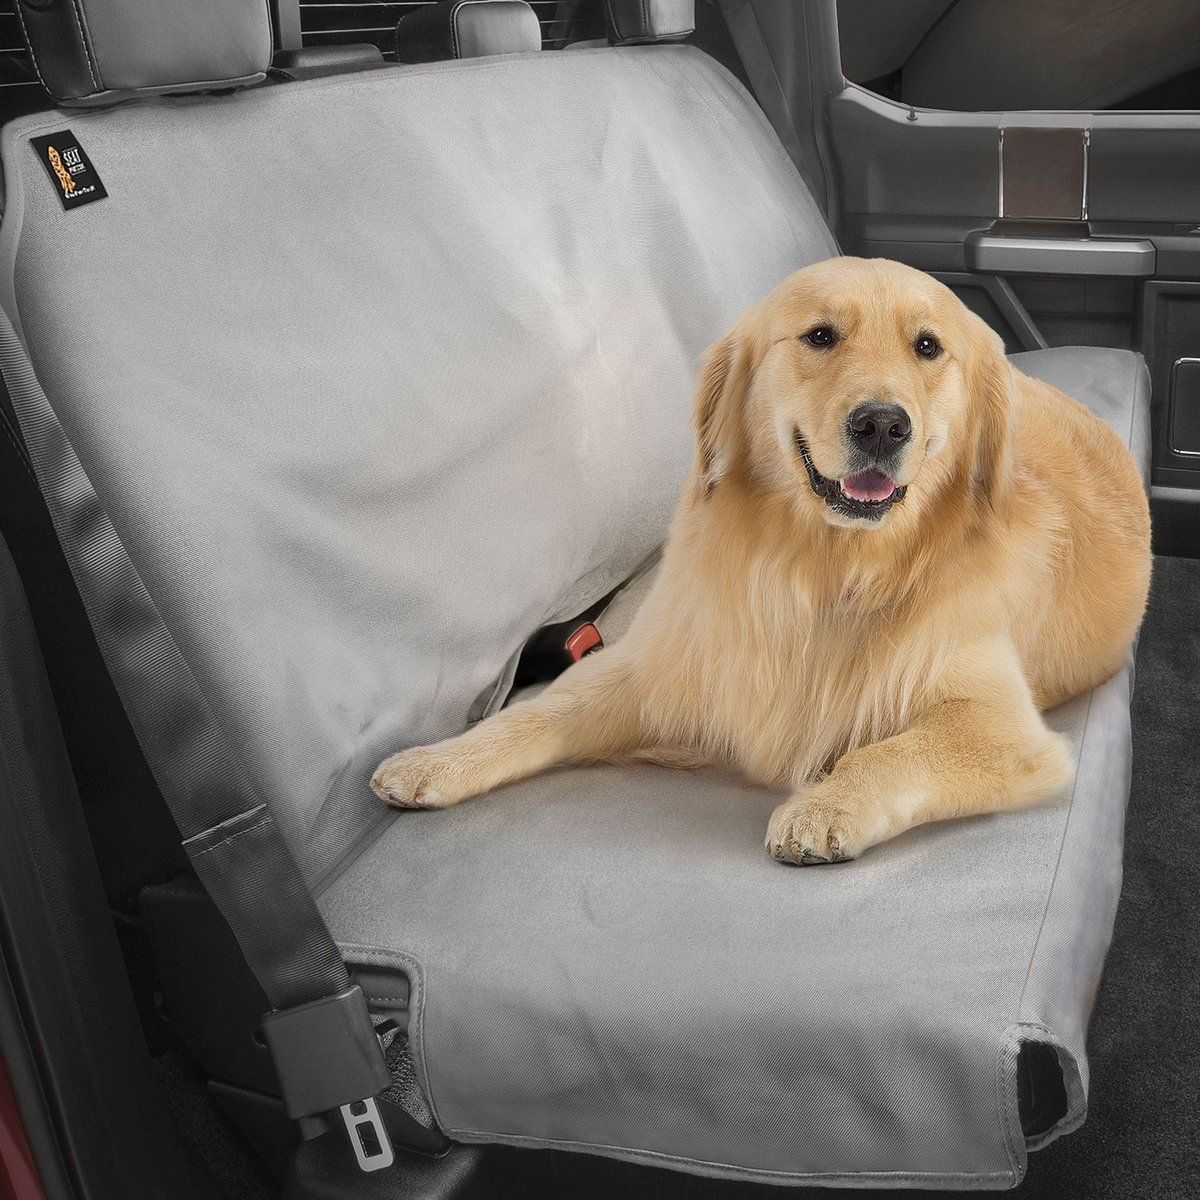 WeatherTech (WeatherTech) Twitter Seat protector, Pet